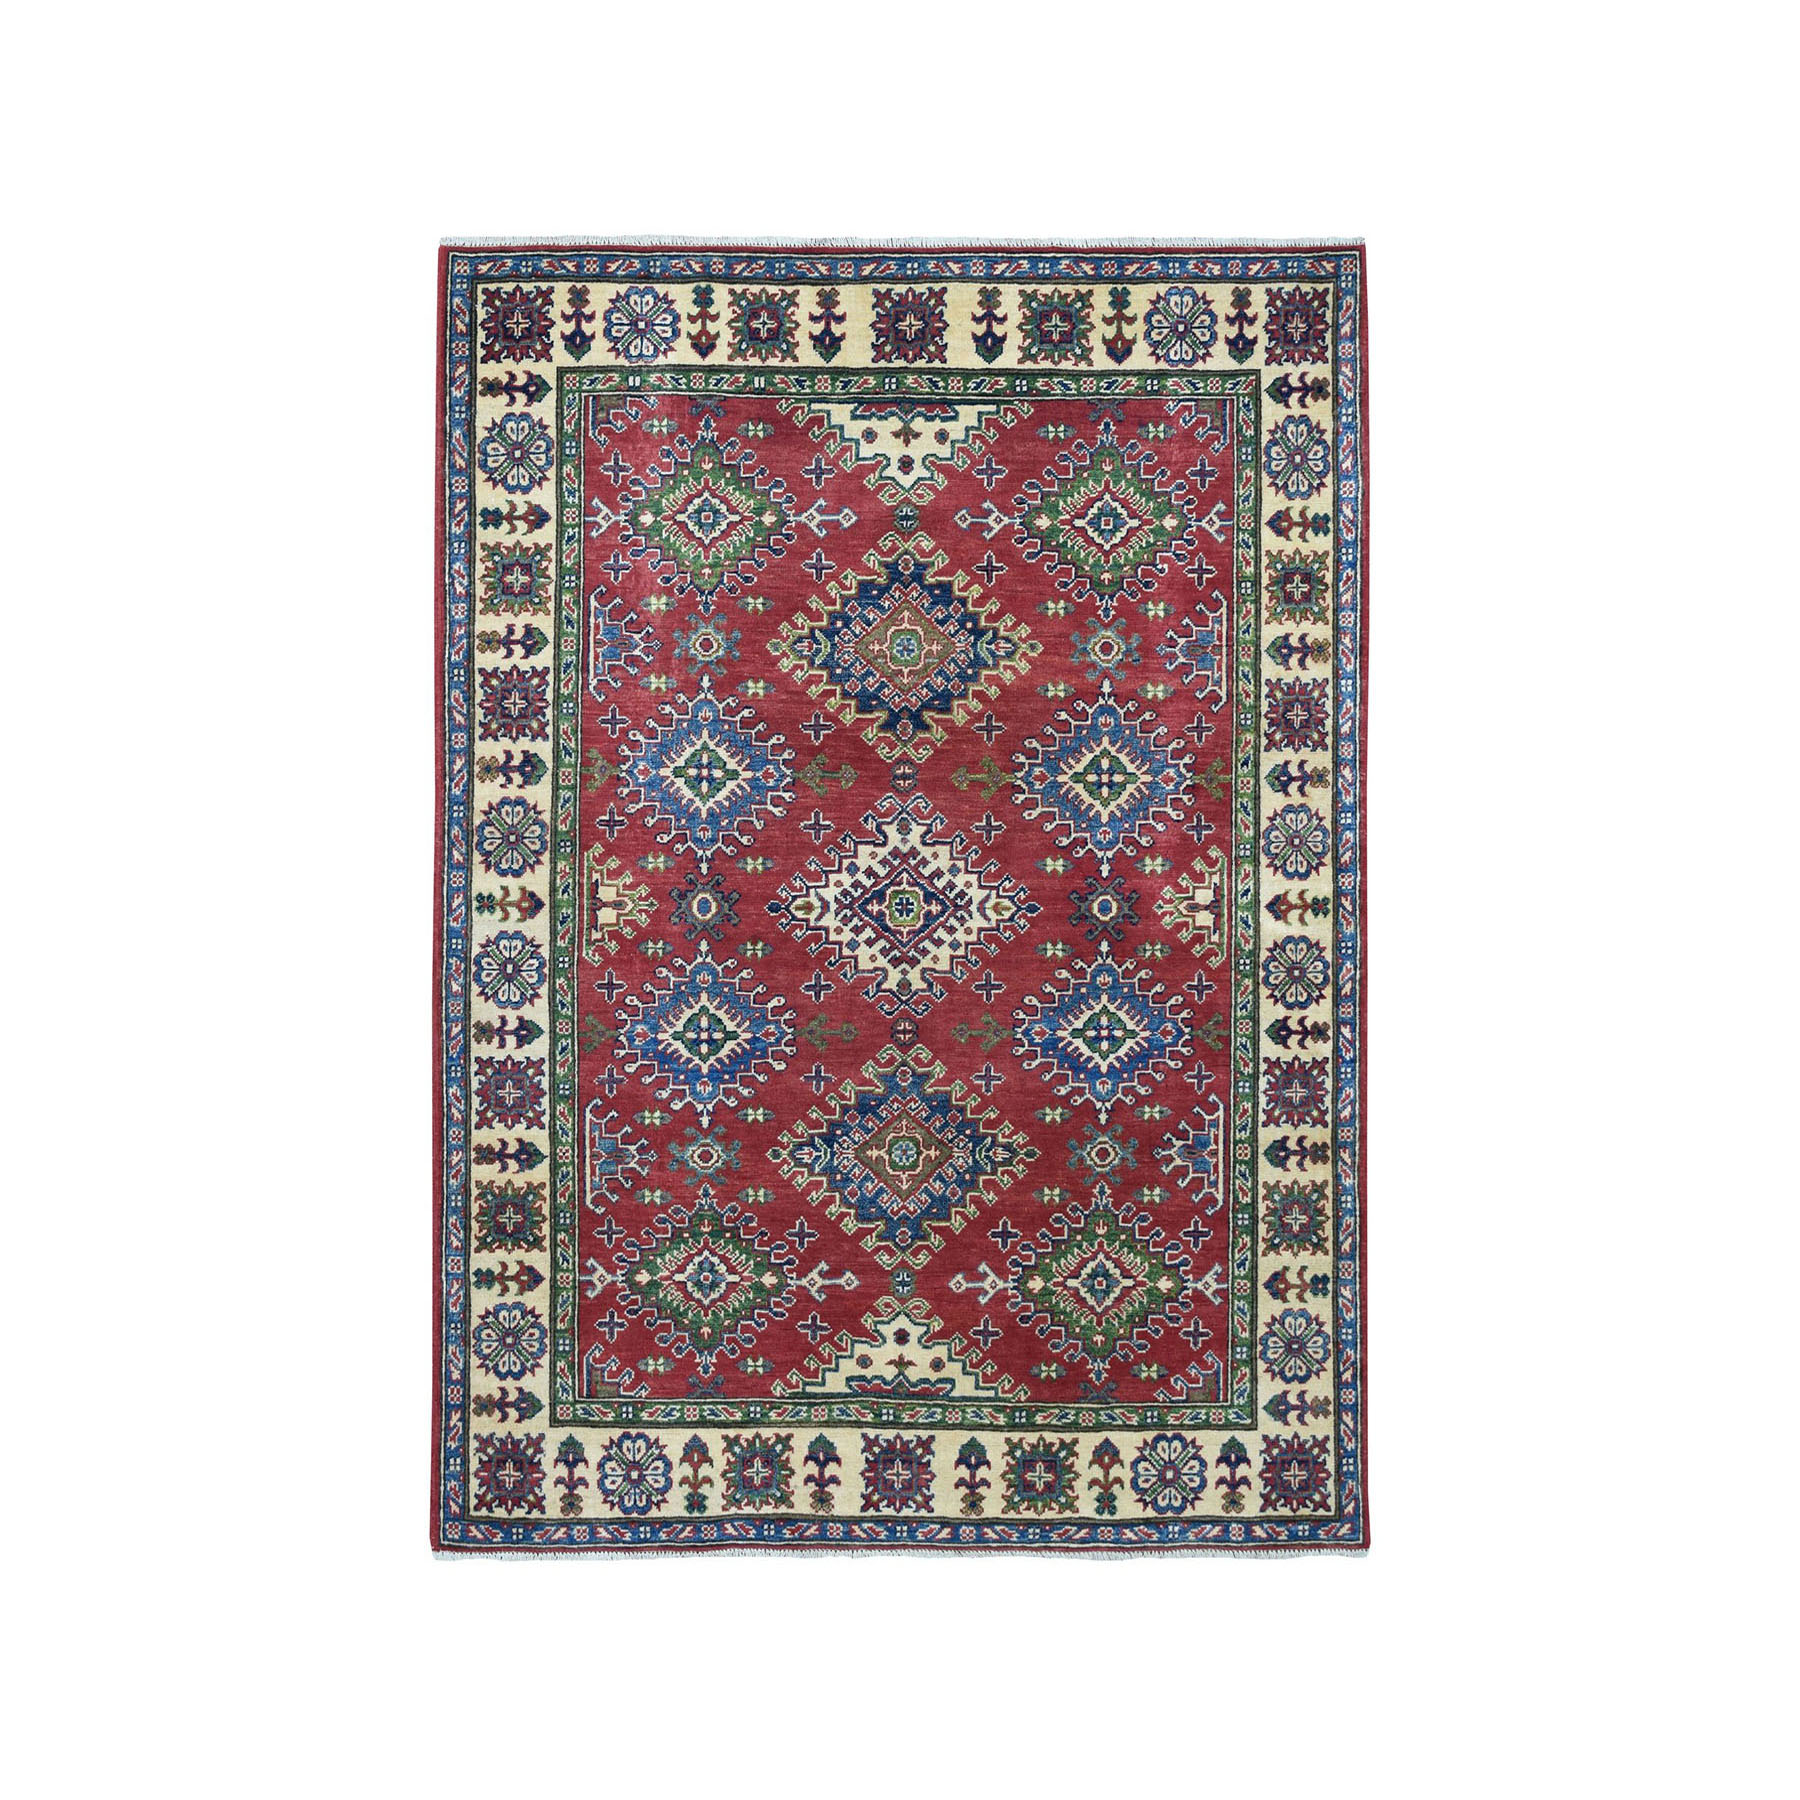 """5'X6'5"""" Red Kazak Pure Wool Geometric Design Hand-Knotted Oriental Rug moae06d9"""